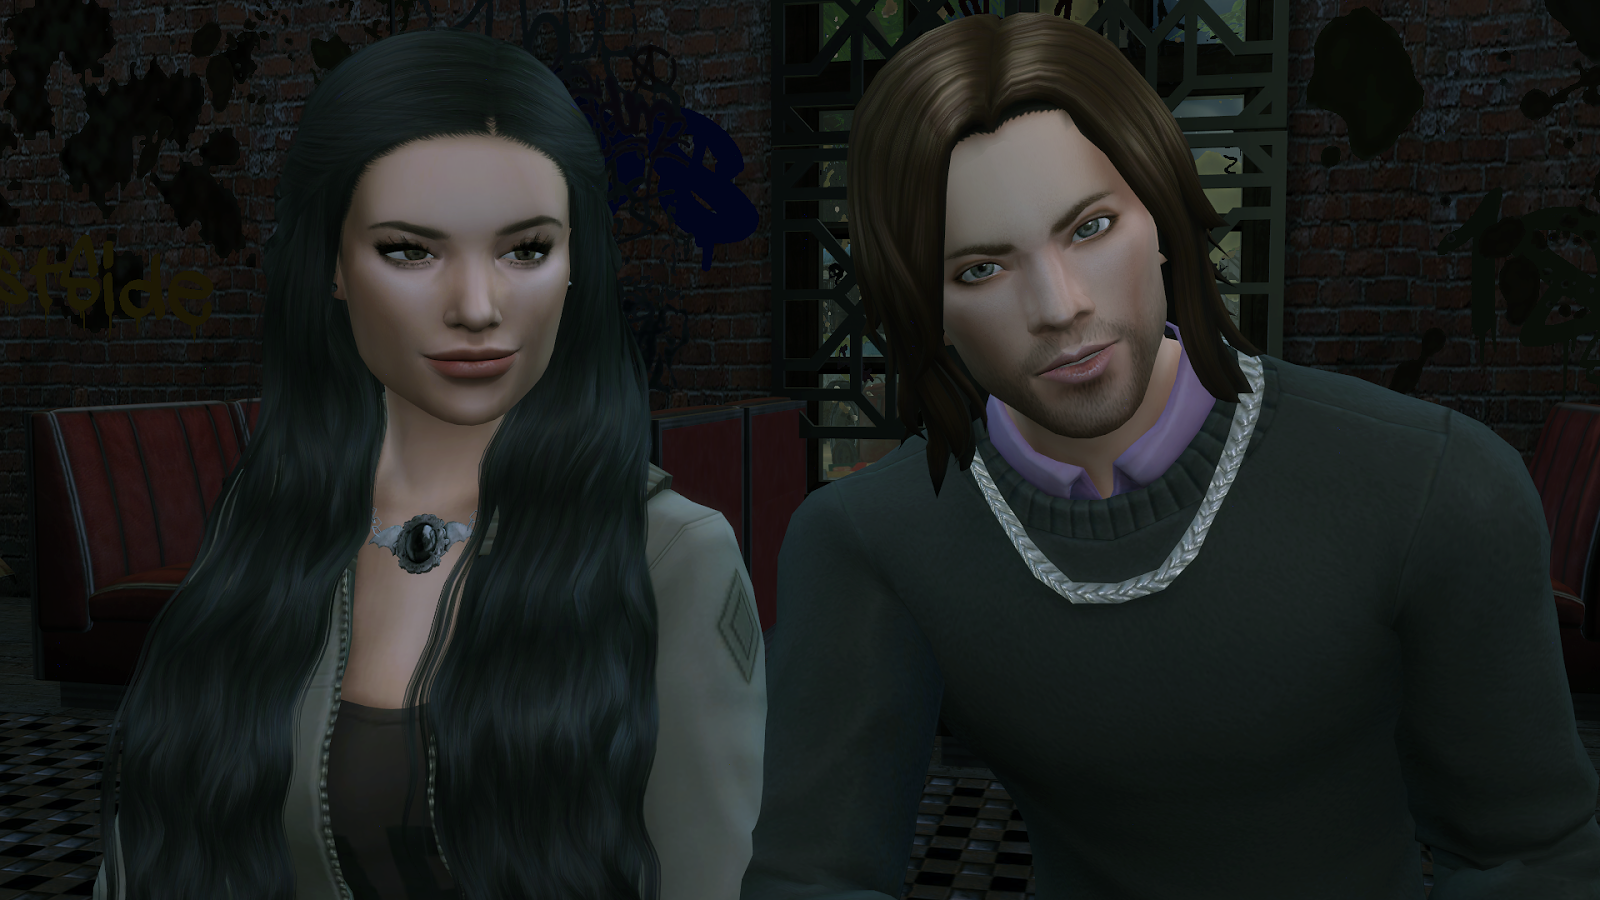 Supernatural sims models by Melissa